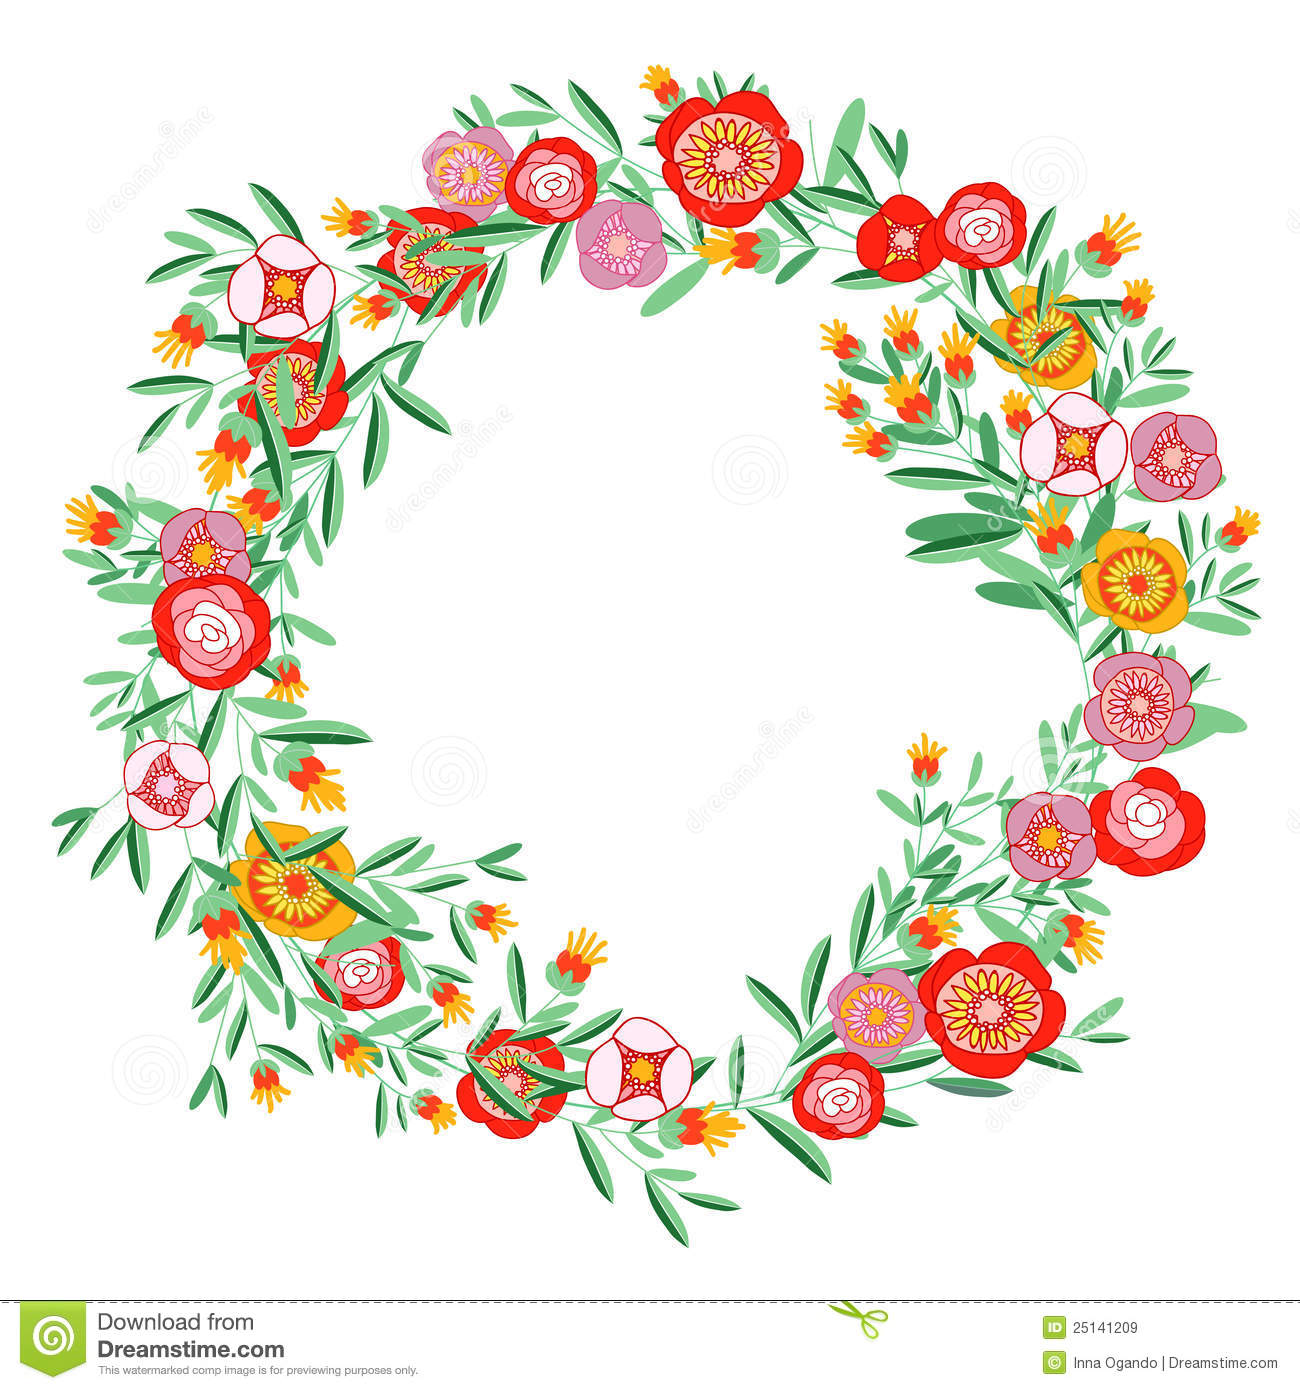 Free Floral Wreath Clipart Transparent Background.